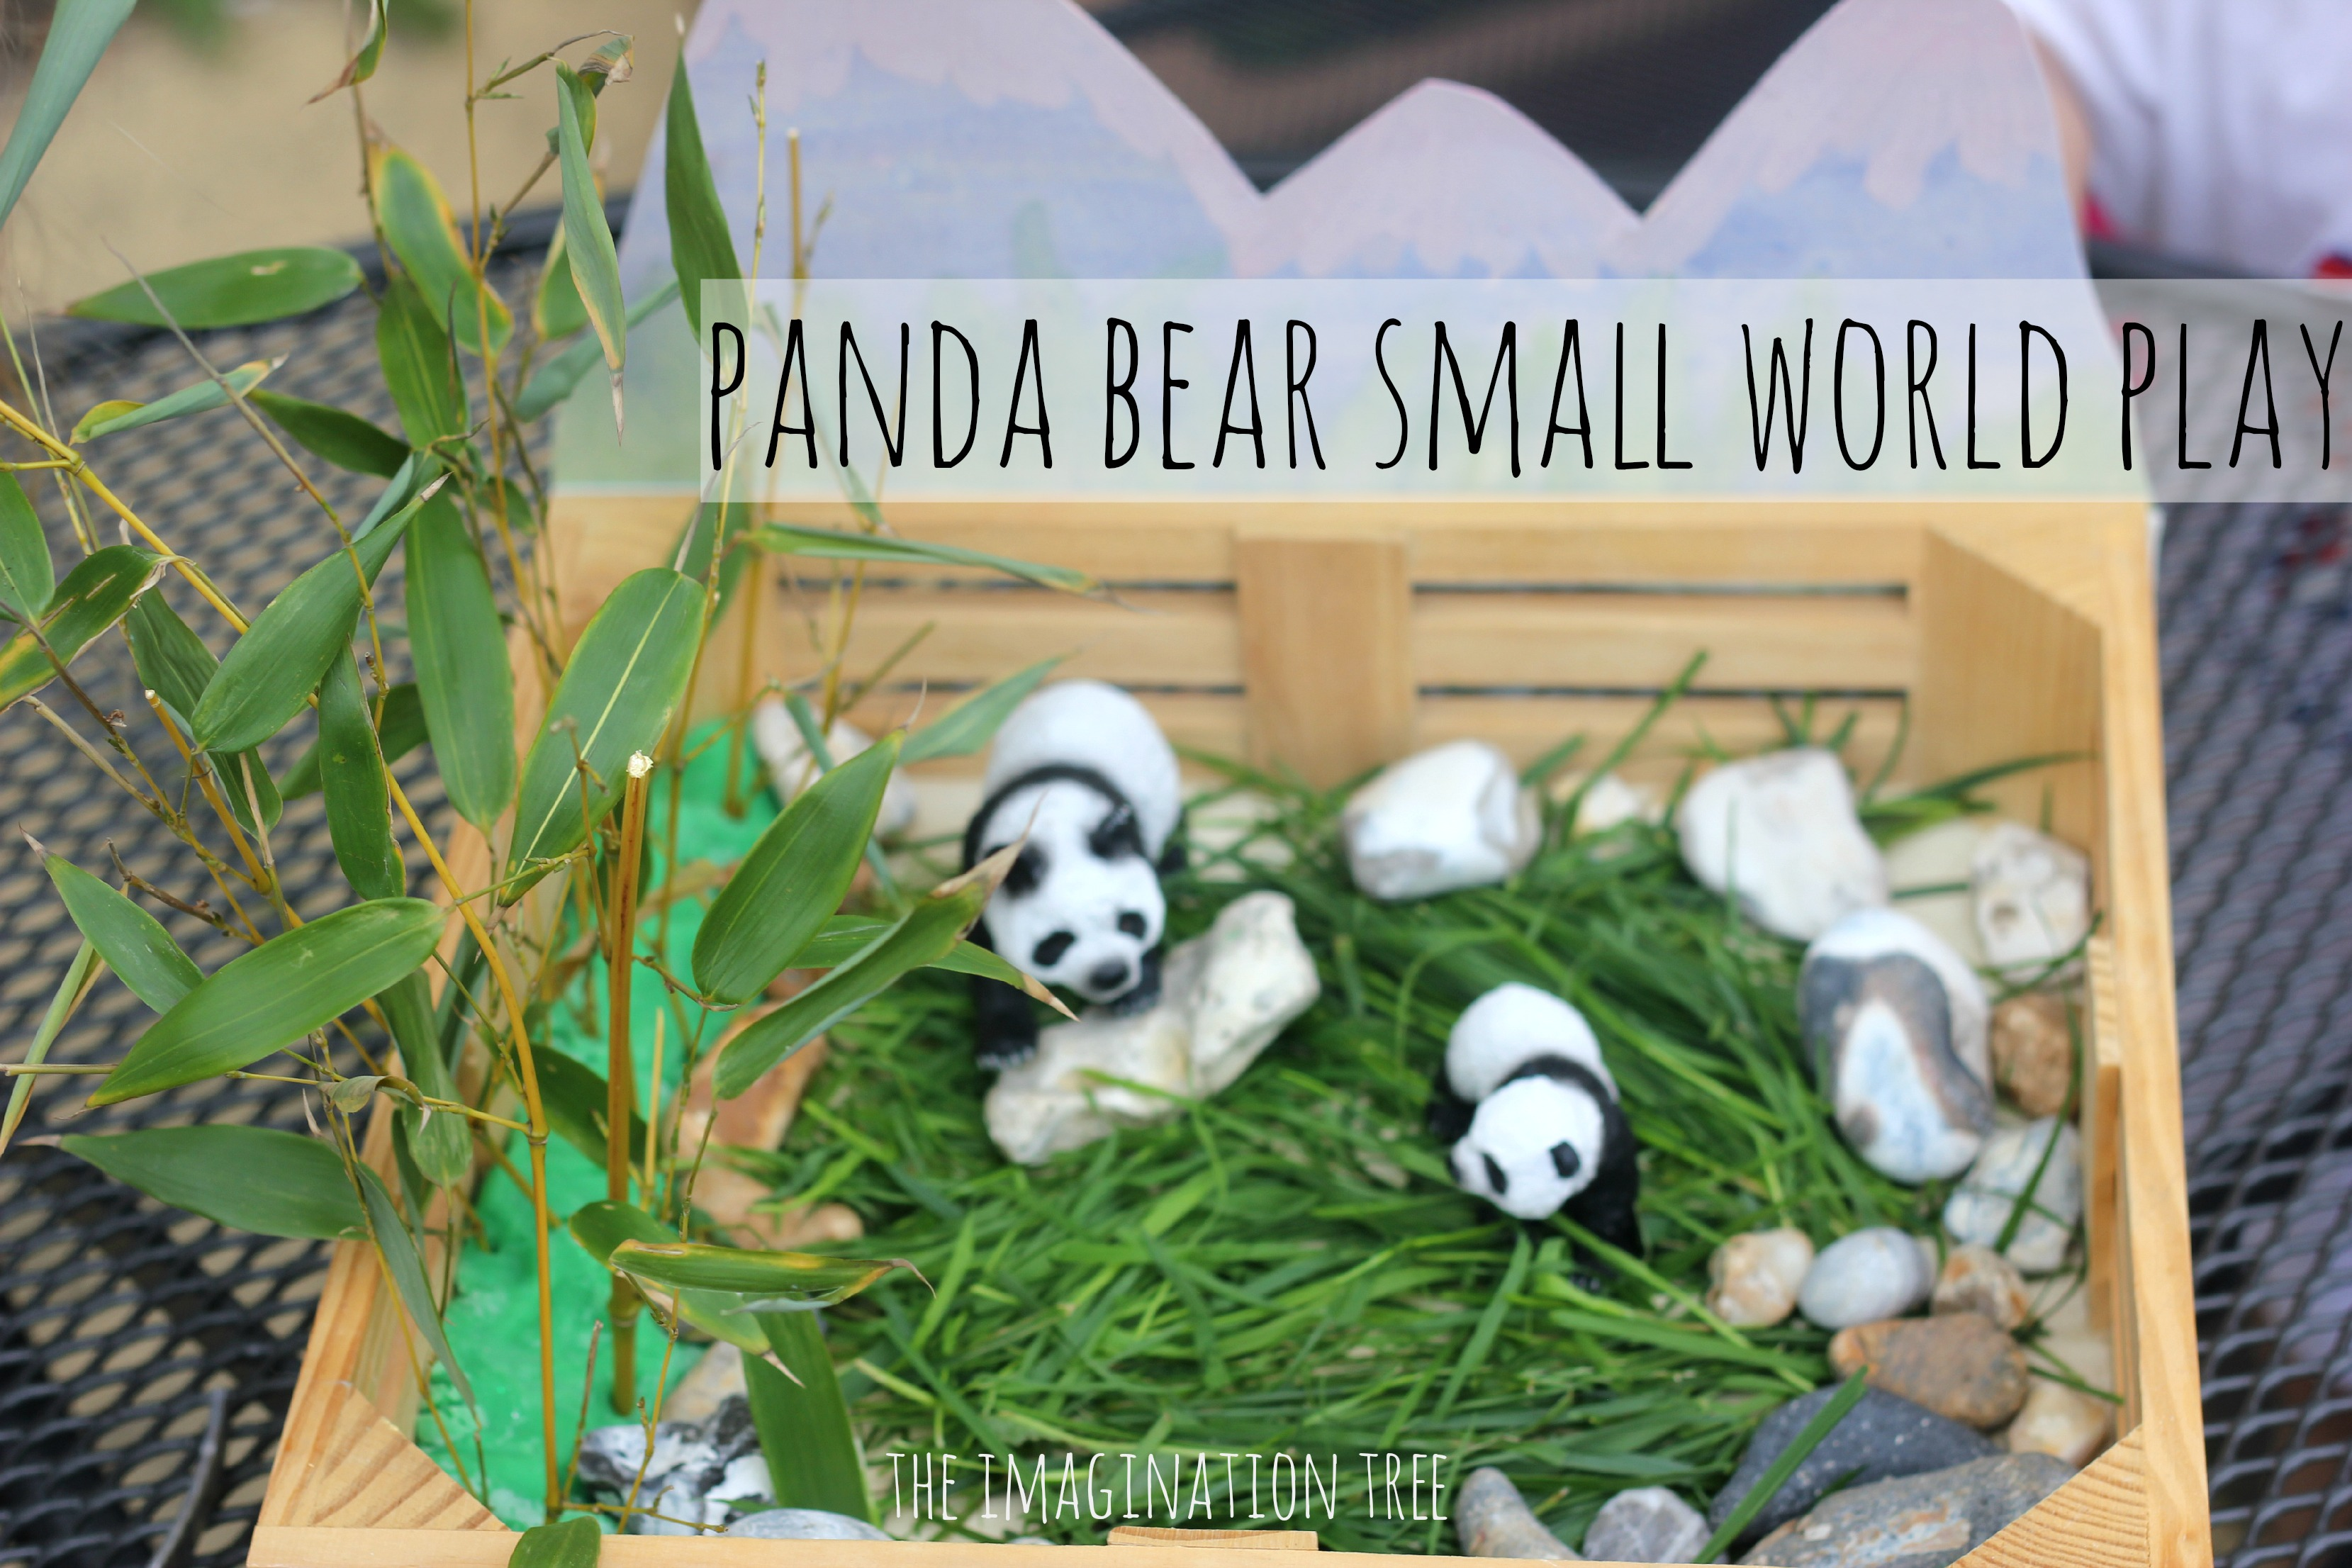 Panda Bear Small World Imaginative Play The Imagination Tree